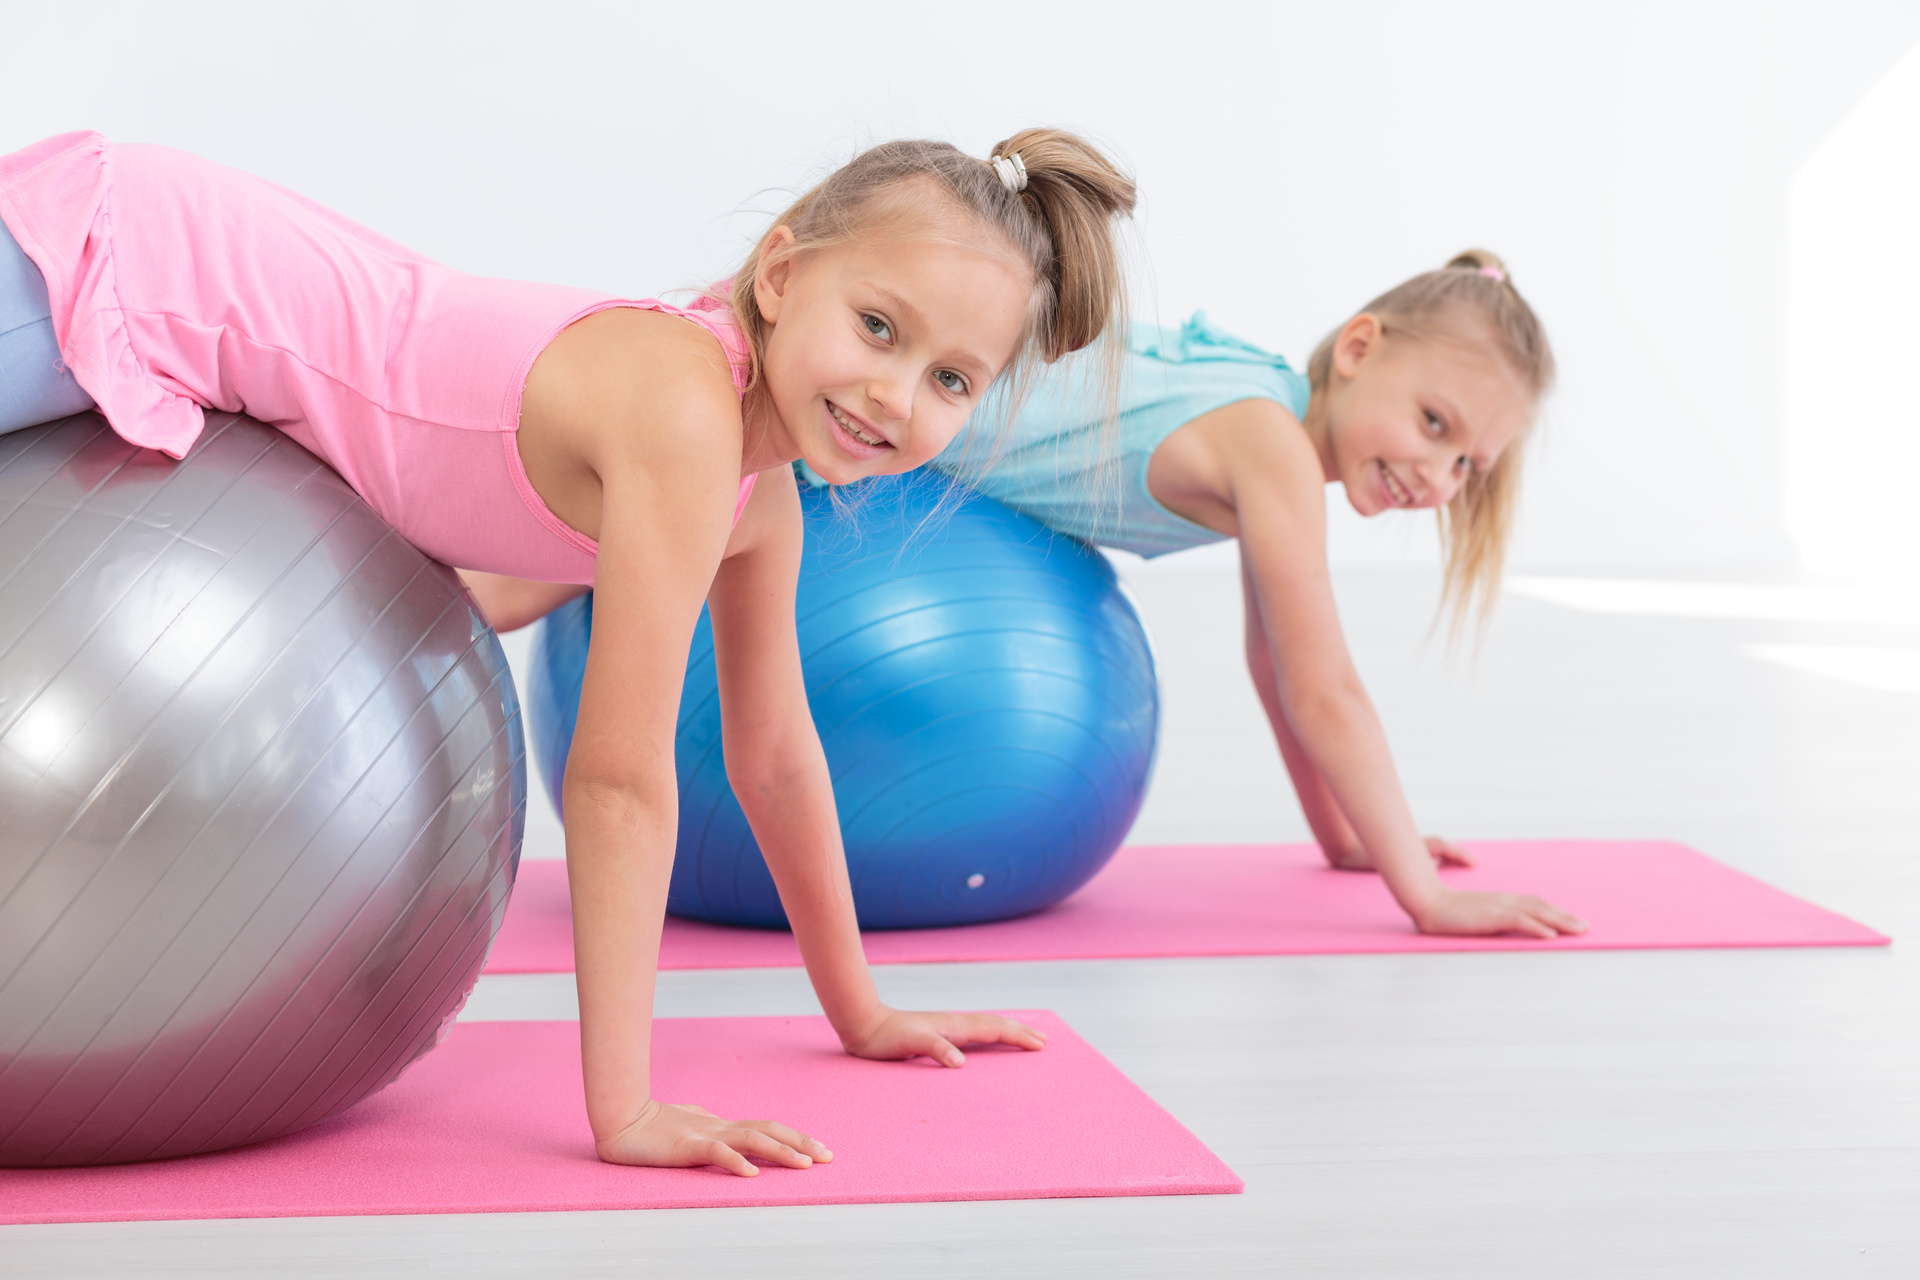 Pity, teen on yoga ball topic simply